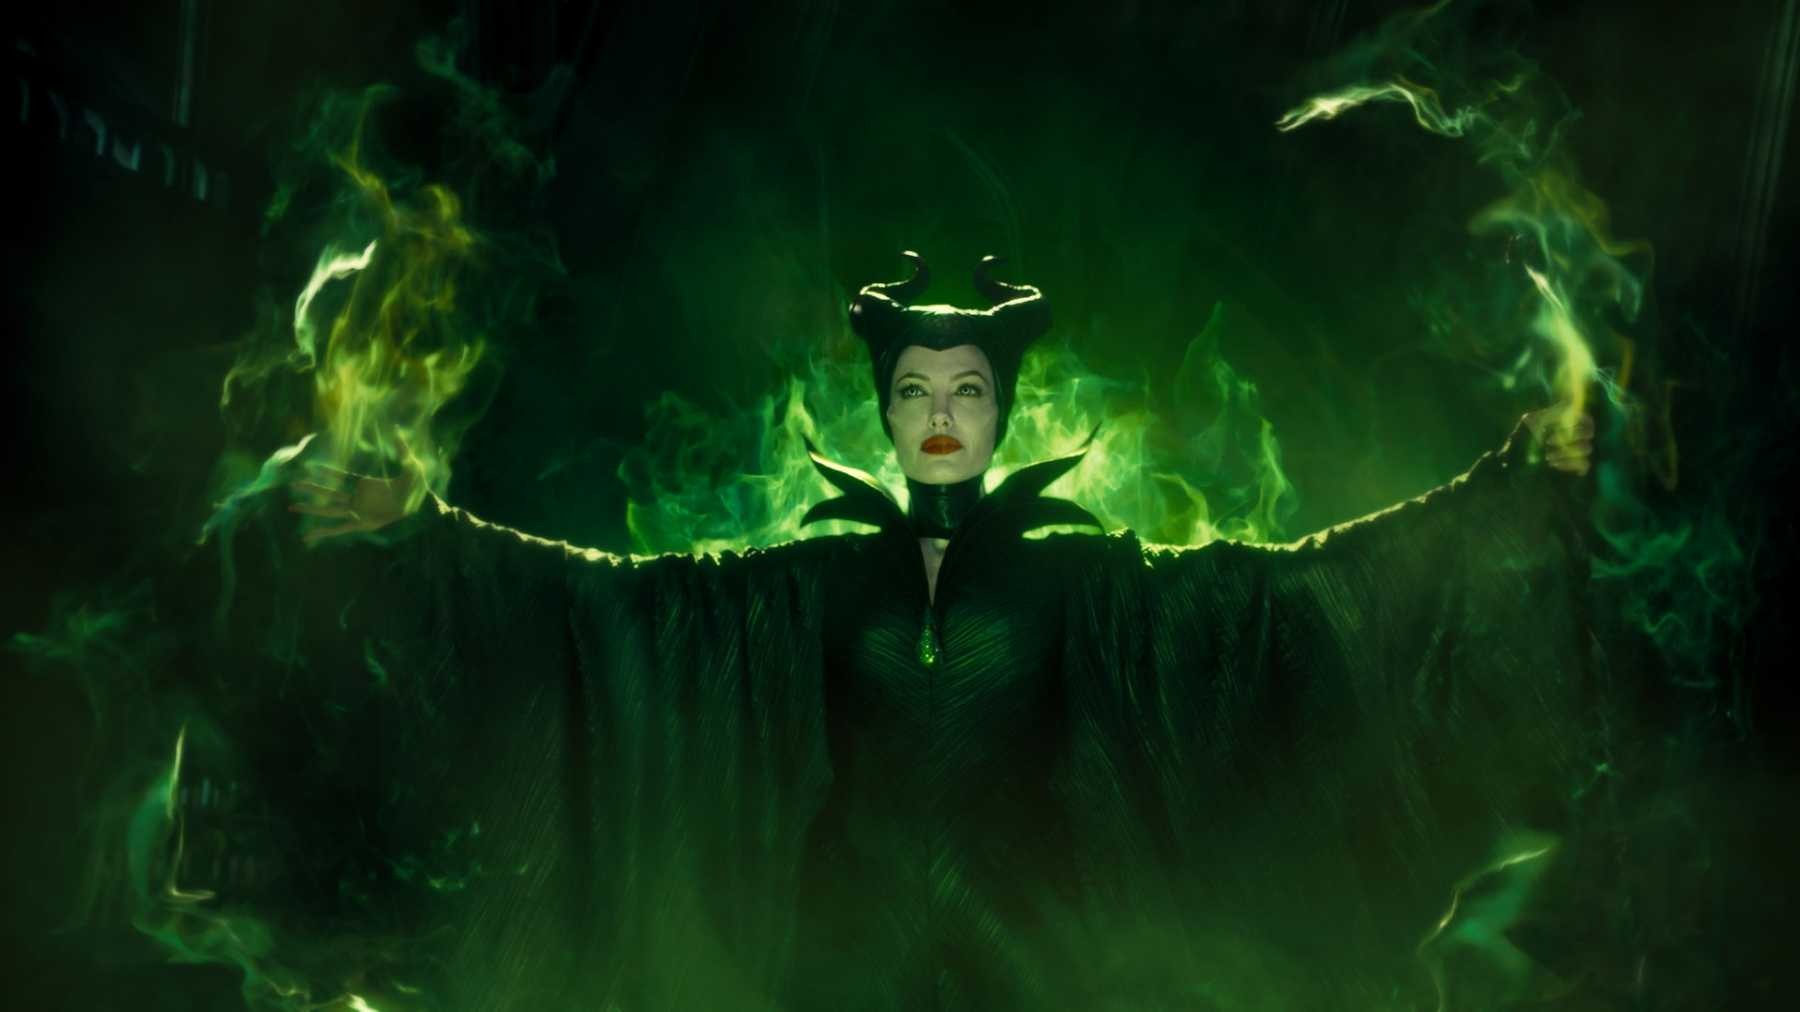 Malicious Maleficent? Angelina Jolie Dazzles As One Of Disney's Most Infamous Villains